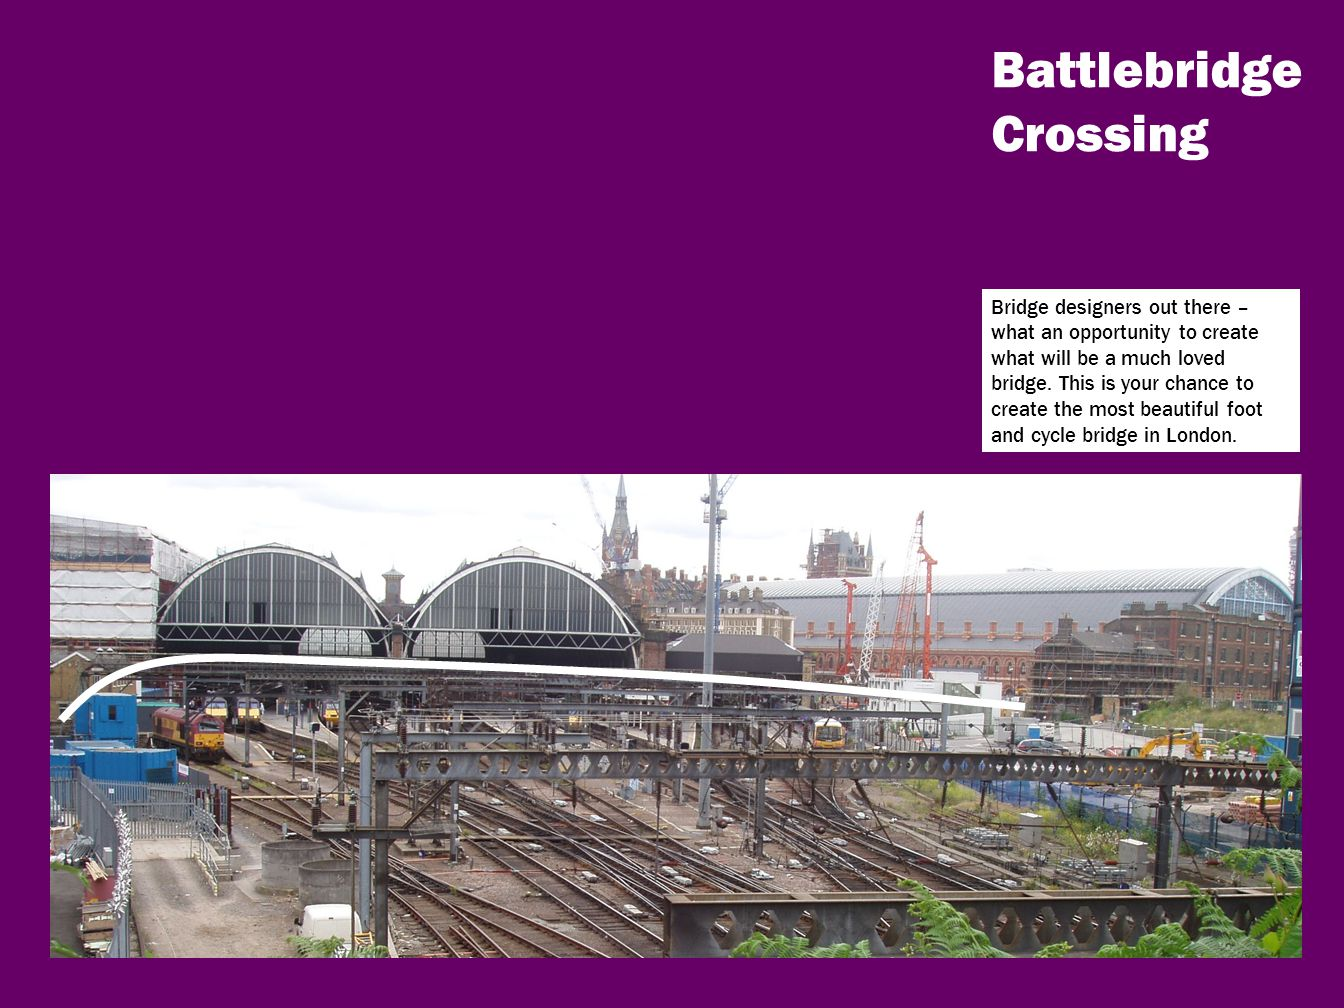 Battlebridge Crossing Bridge designers out there – what an opportunity to create what will be a much loved bridge.